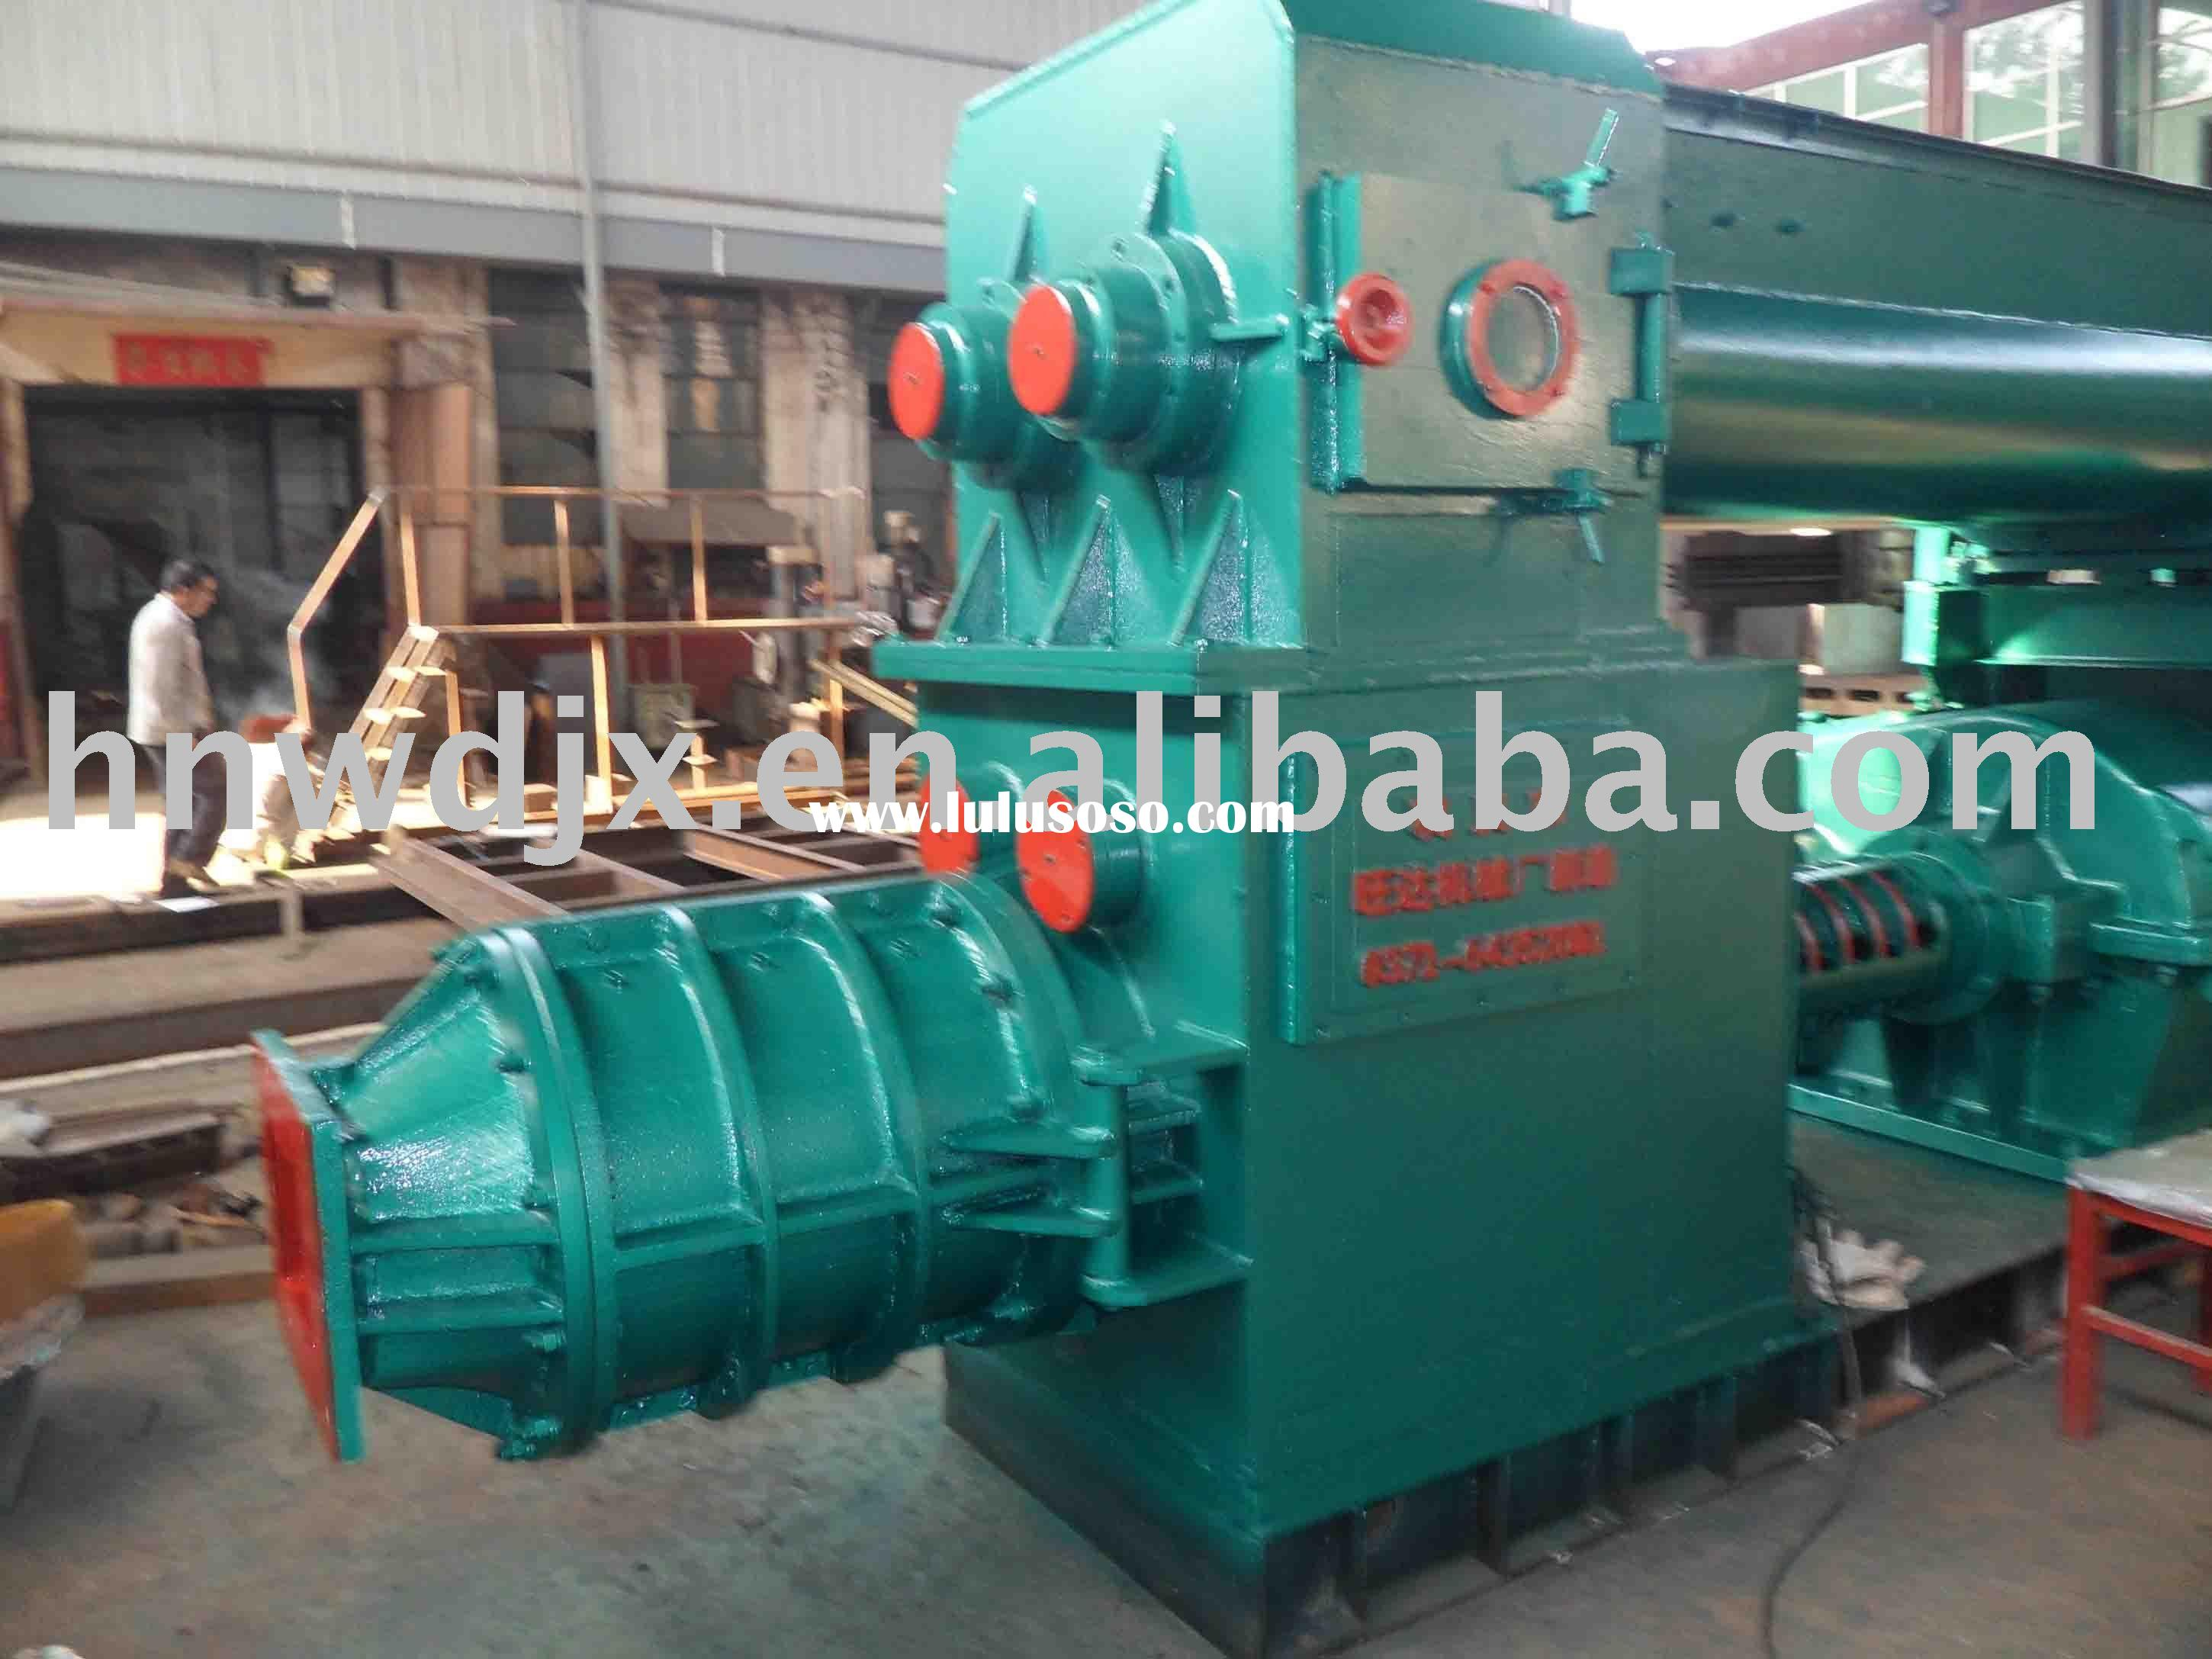 2011 India New !! Red Brick machine with high density